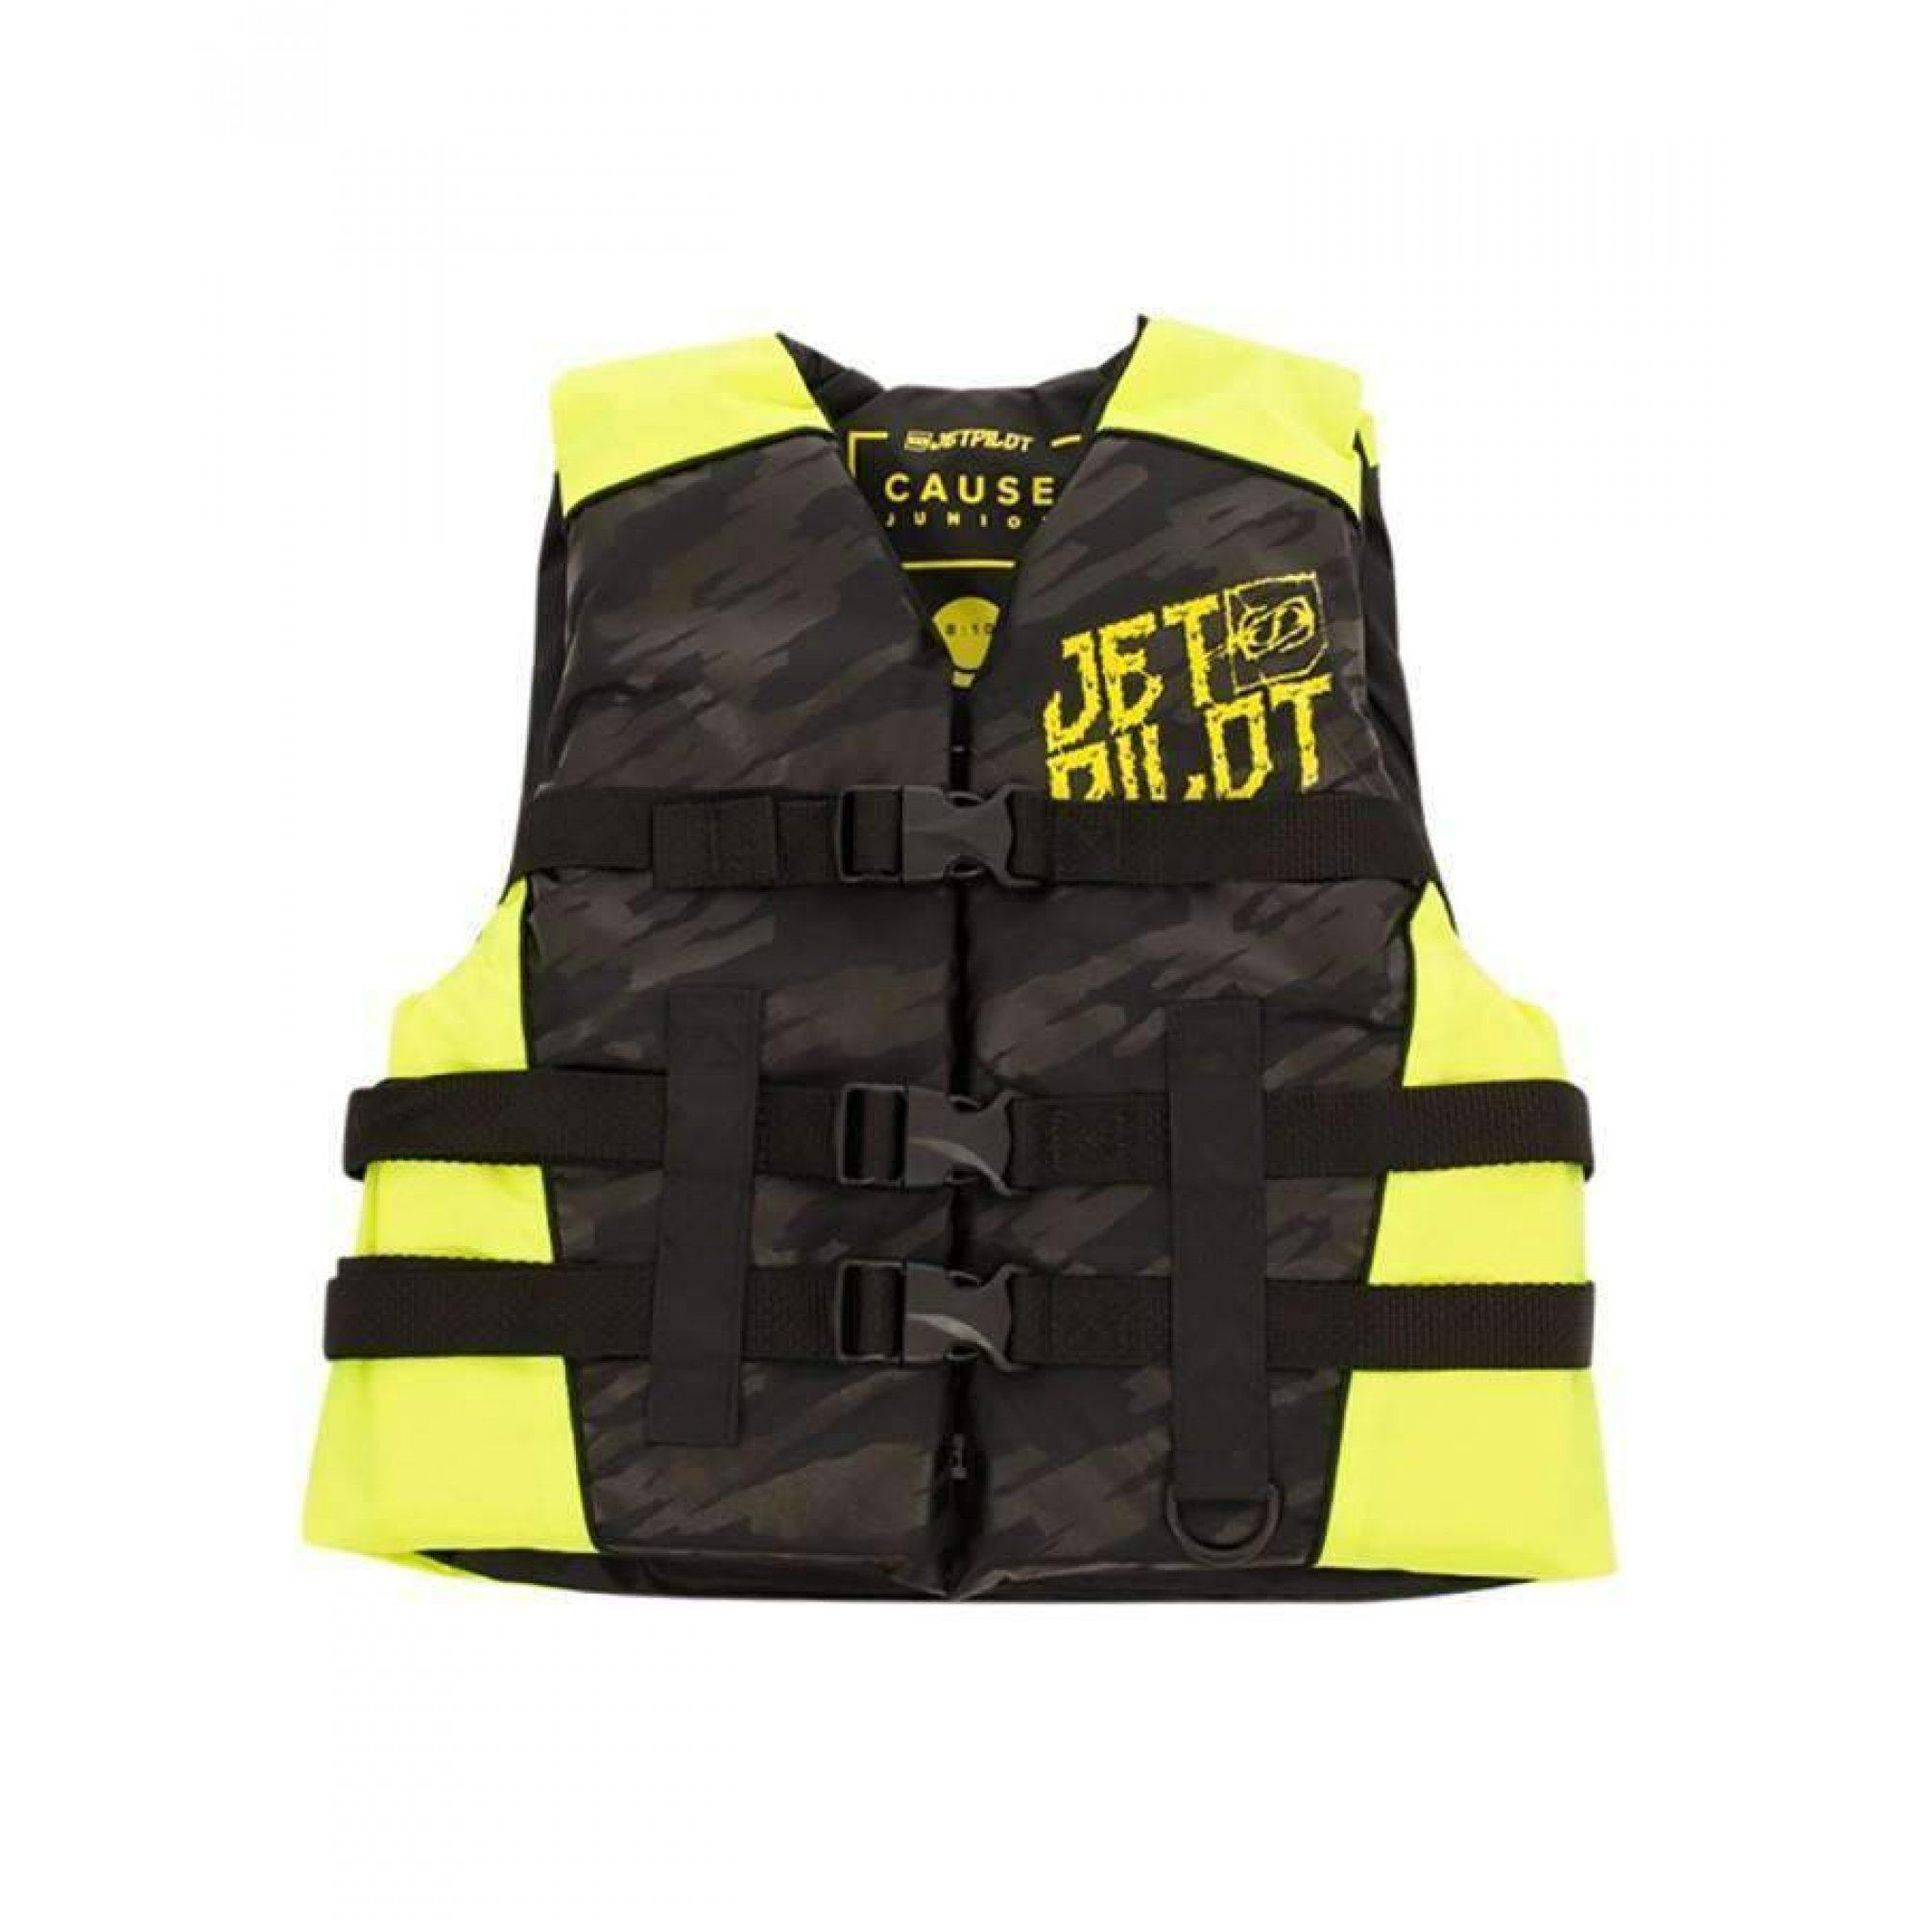 KAMIZELKA JET PILOT CAUSE YOUTH|TEEN NYLON 50N BLACK|YELLOW 19084 1